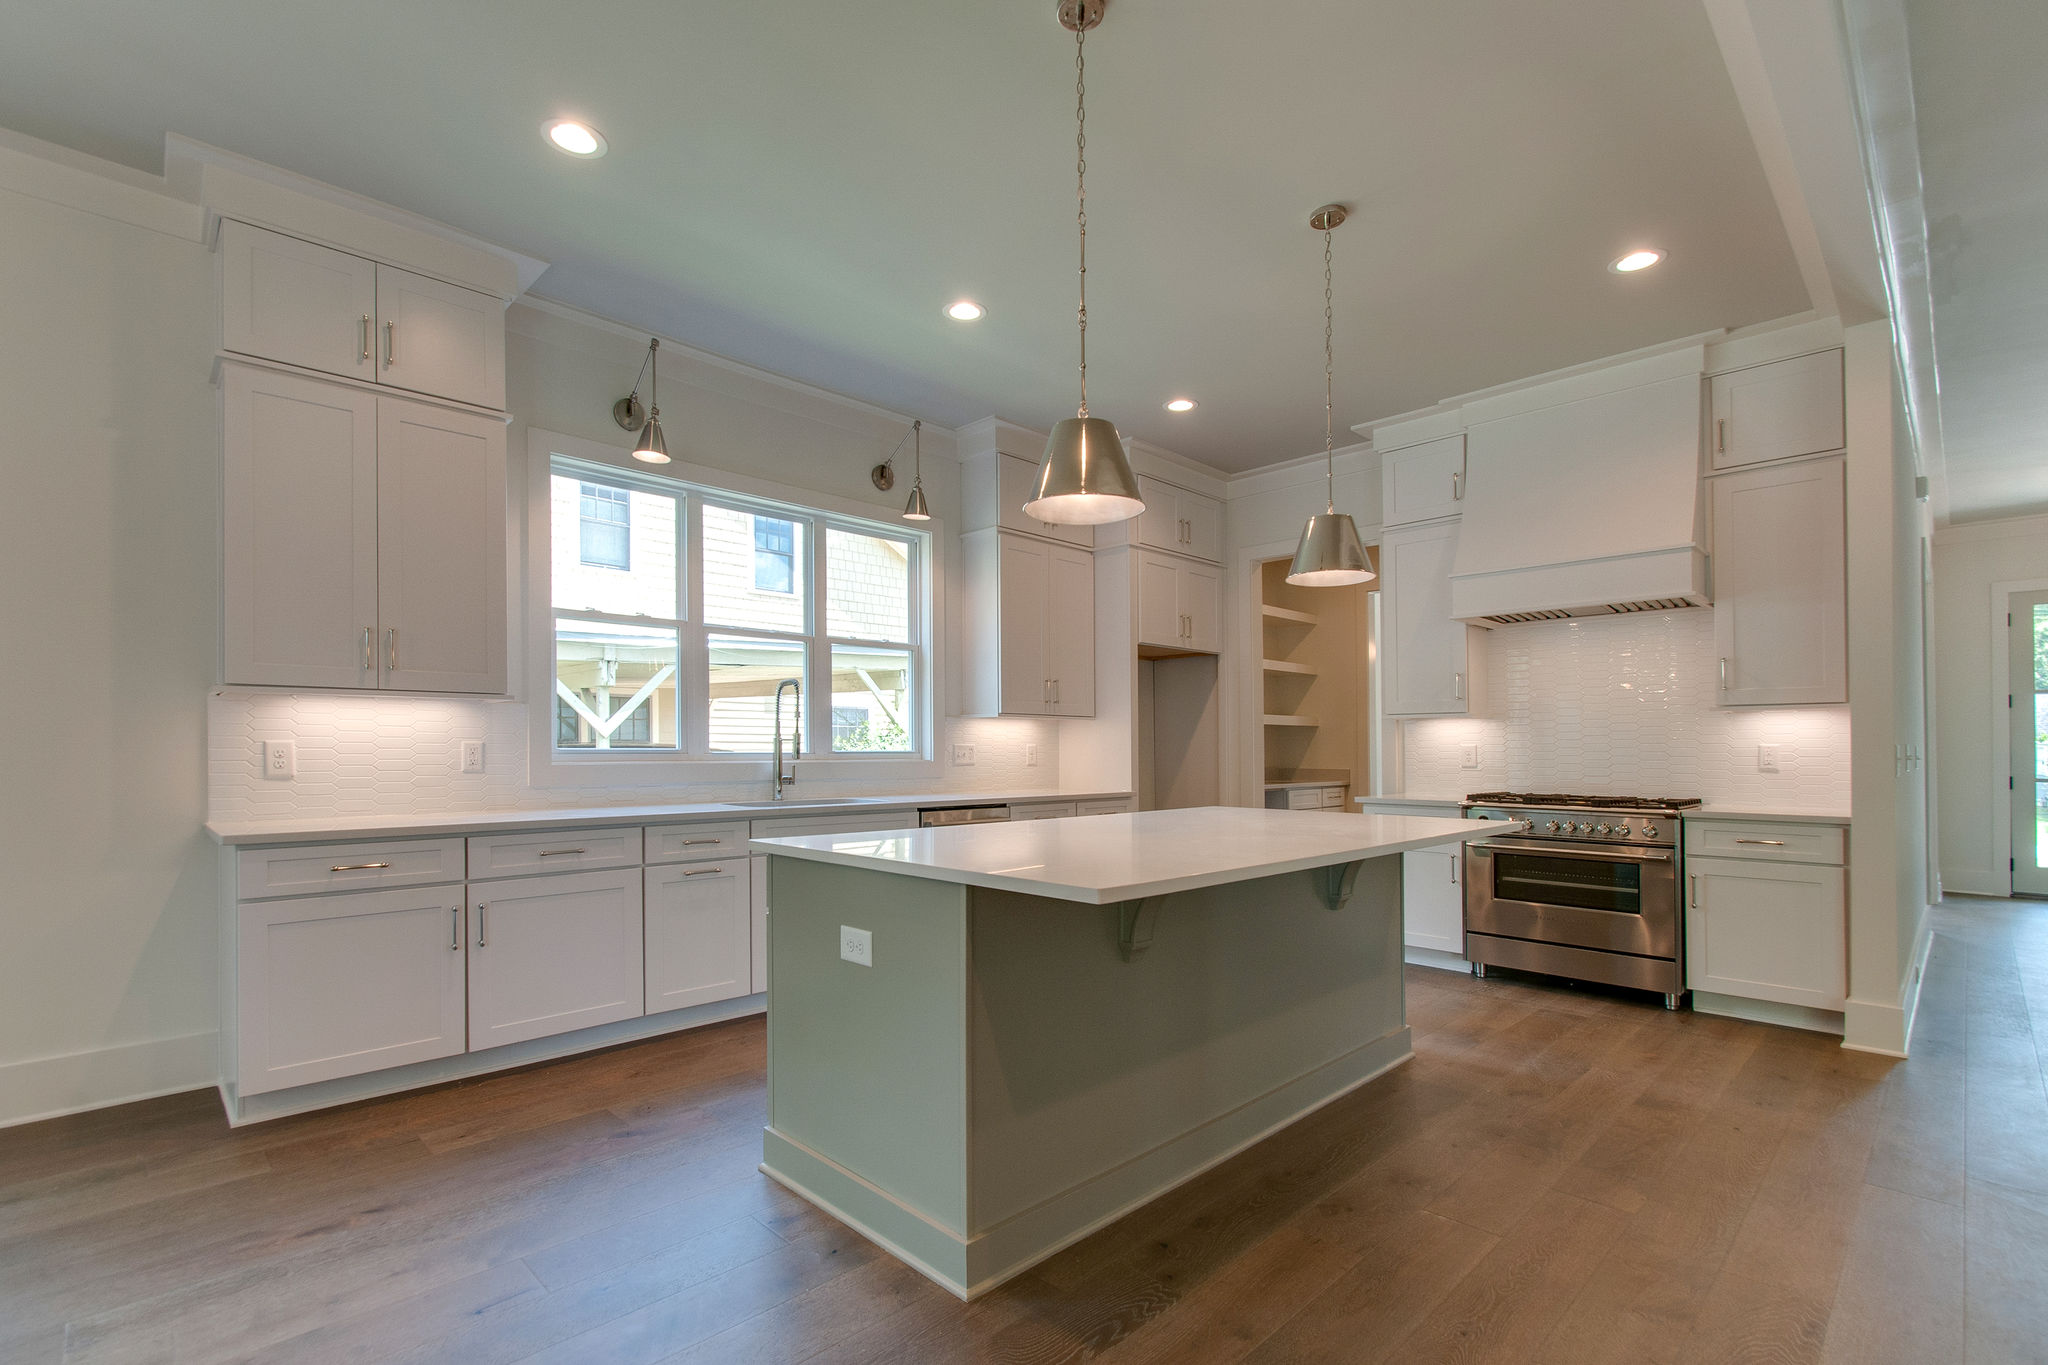 New Homes with open space kitchen in Franklin, Brentwood, and Thompson Station TN with Custom Home Design